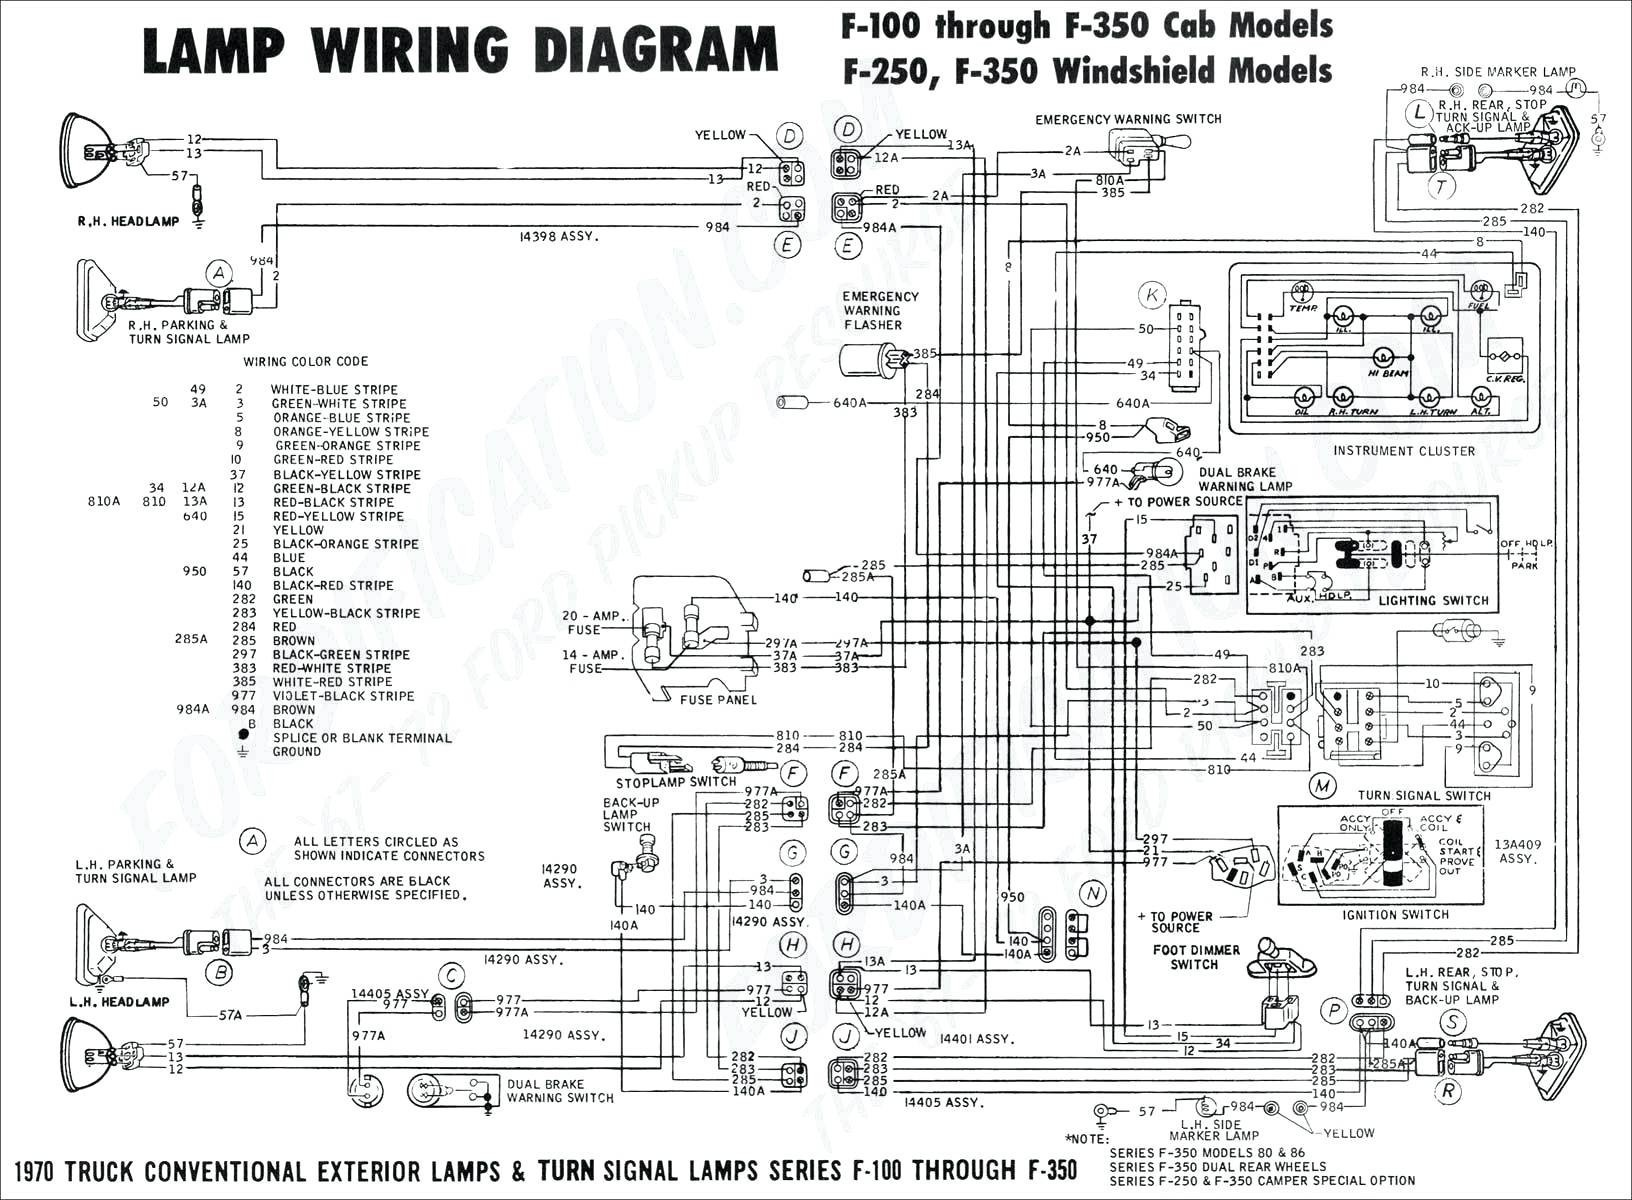 2004 ford Expedition Engine Diagram 2000 ford Ranger Horn Wiring Another Blog About Wiring Diagram • Of 2004 ford Expedition Engine Diagram ford Explorer Parts Diagram — Daytonva150